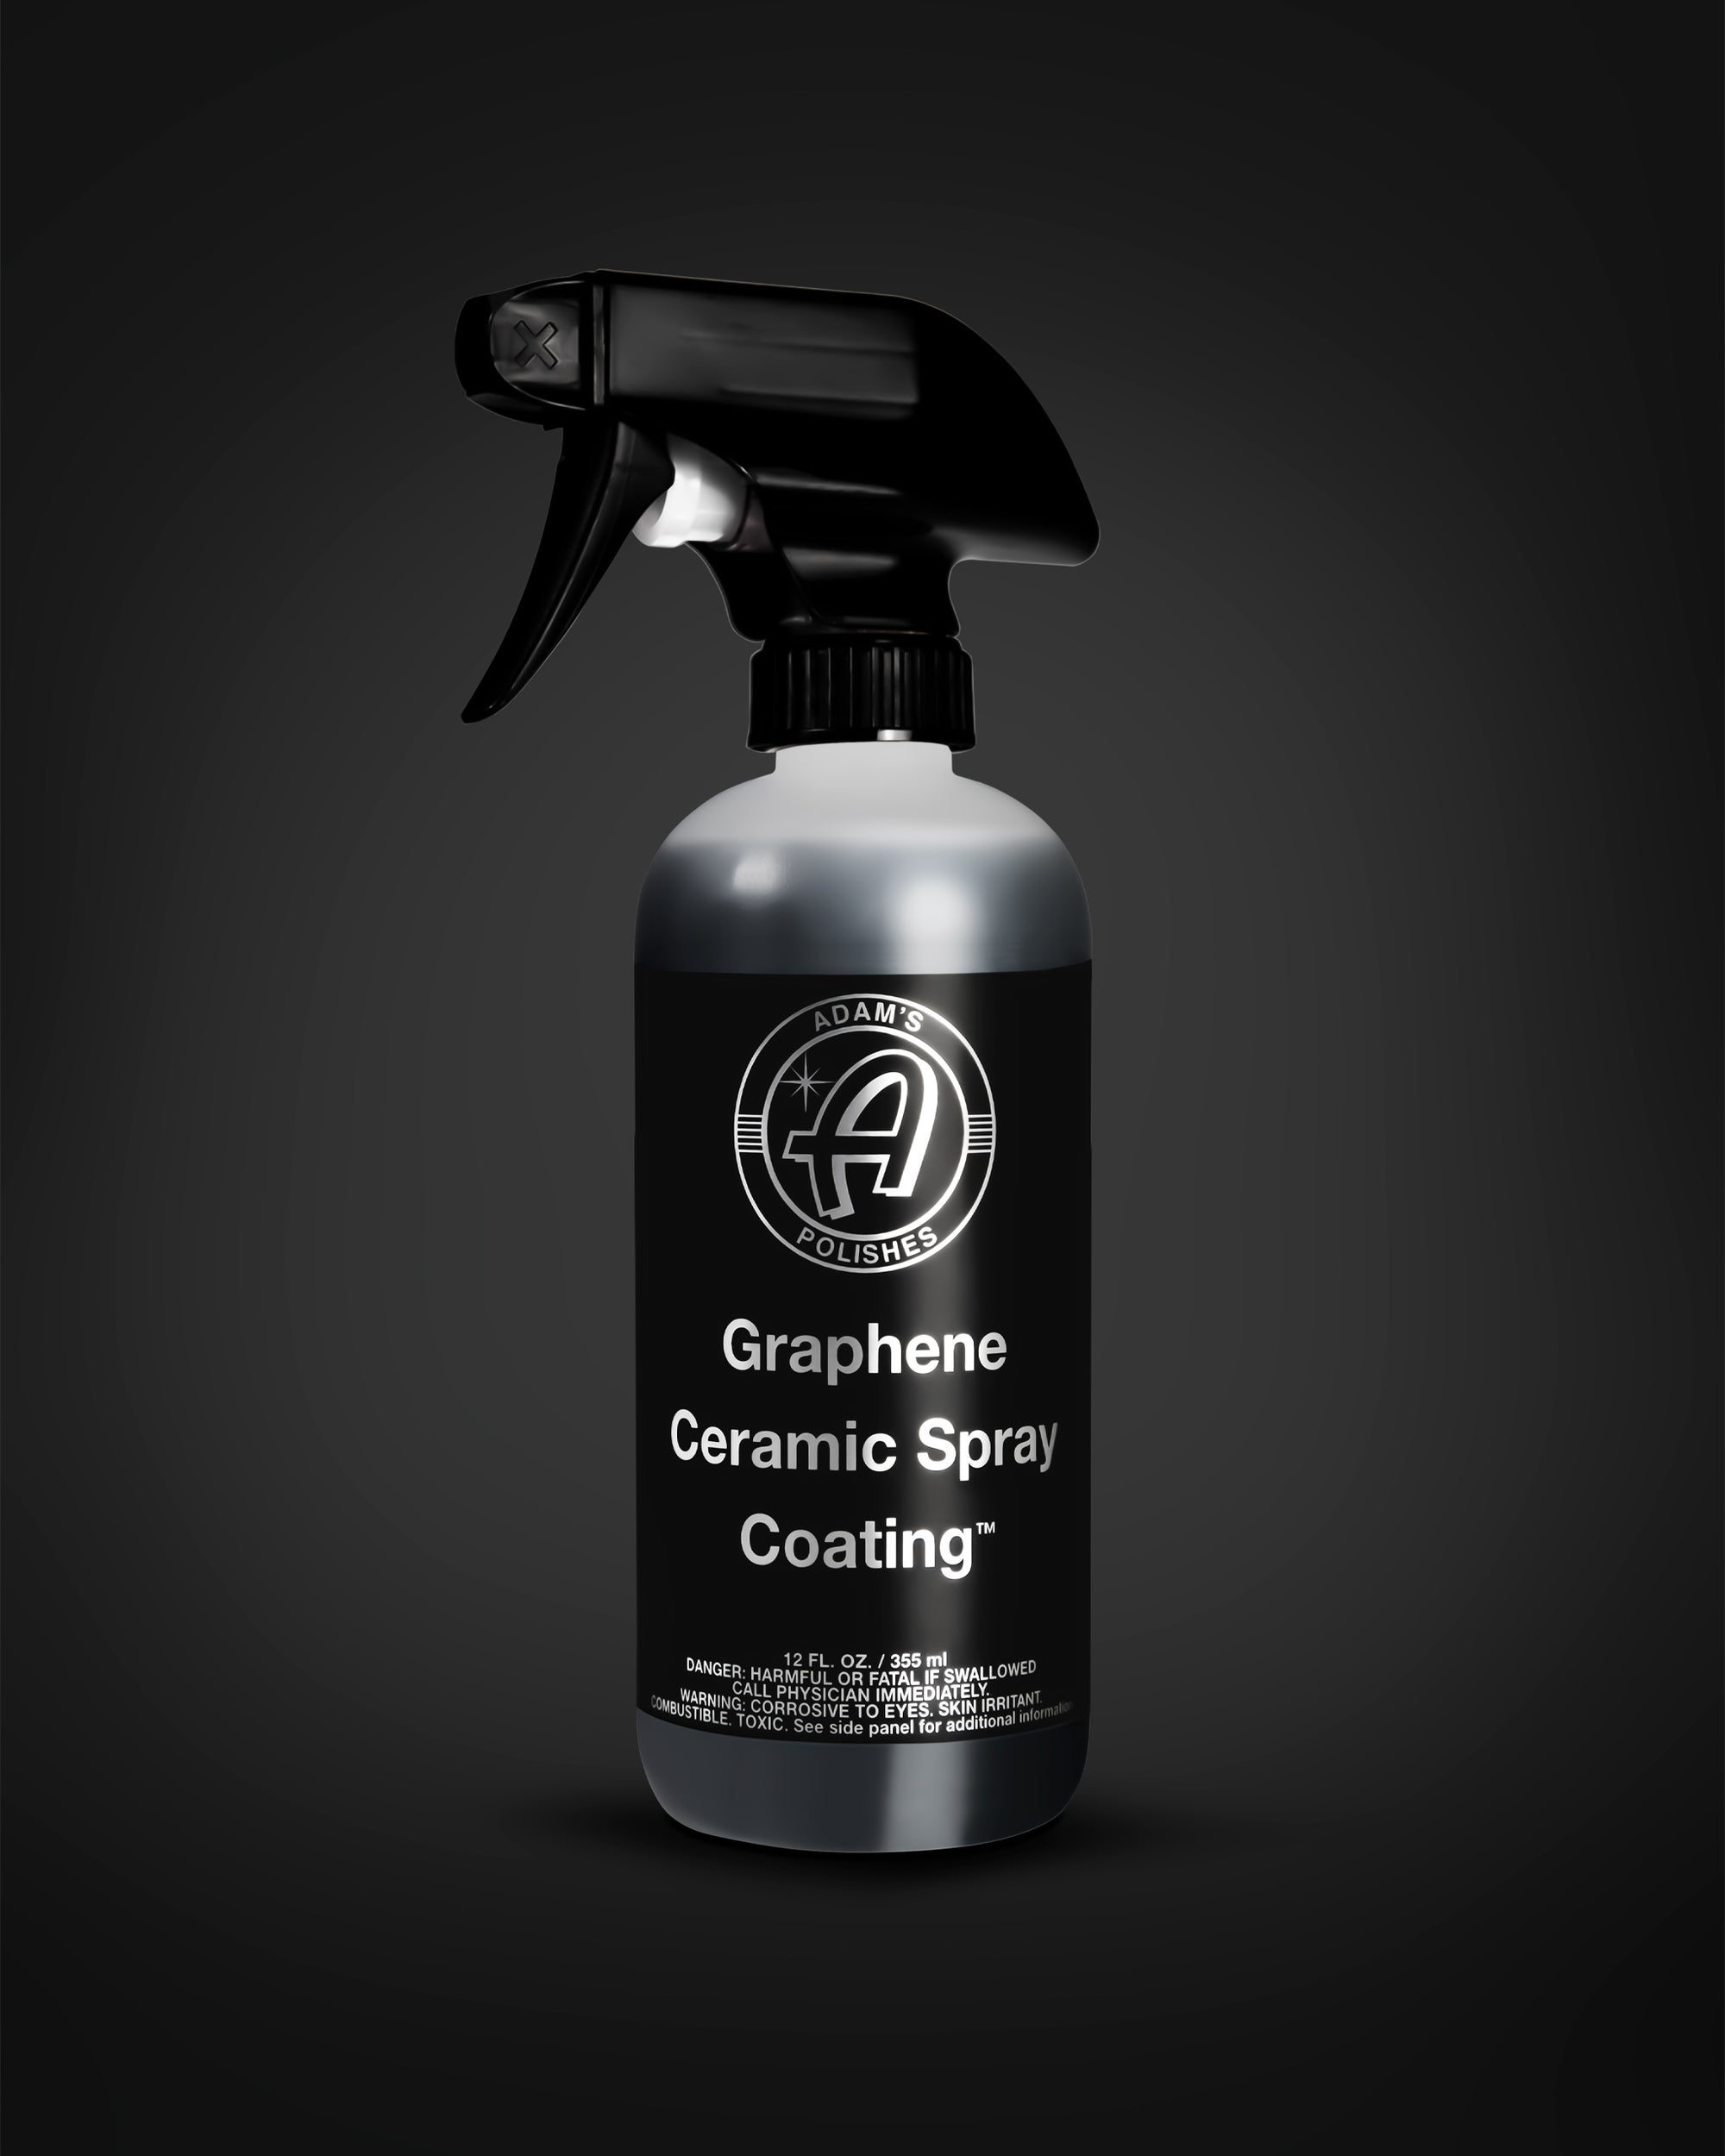 Graphene Ceramic Spray Coating™